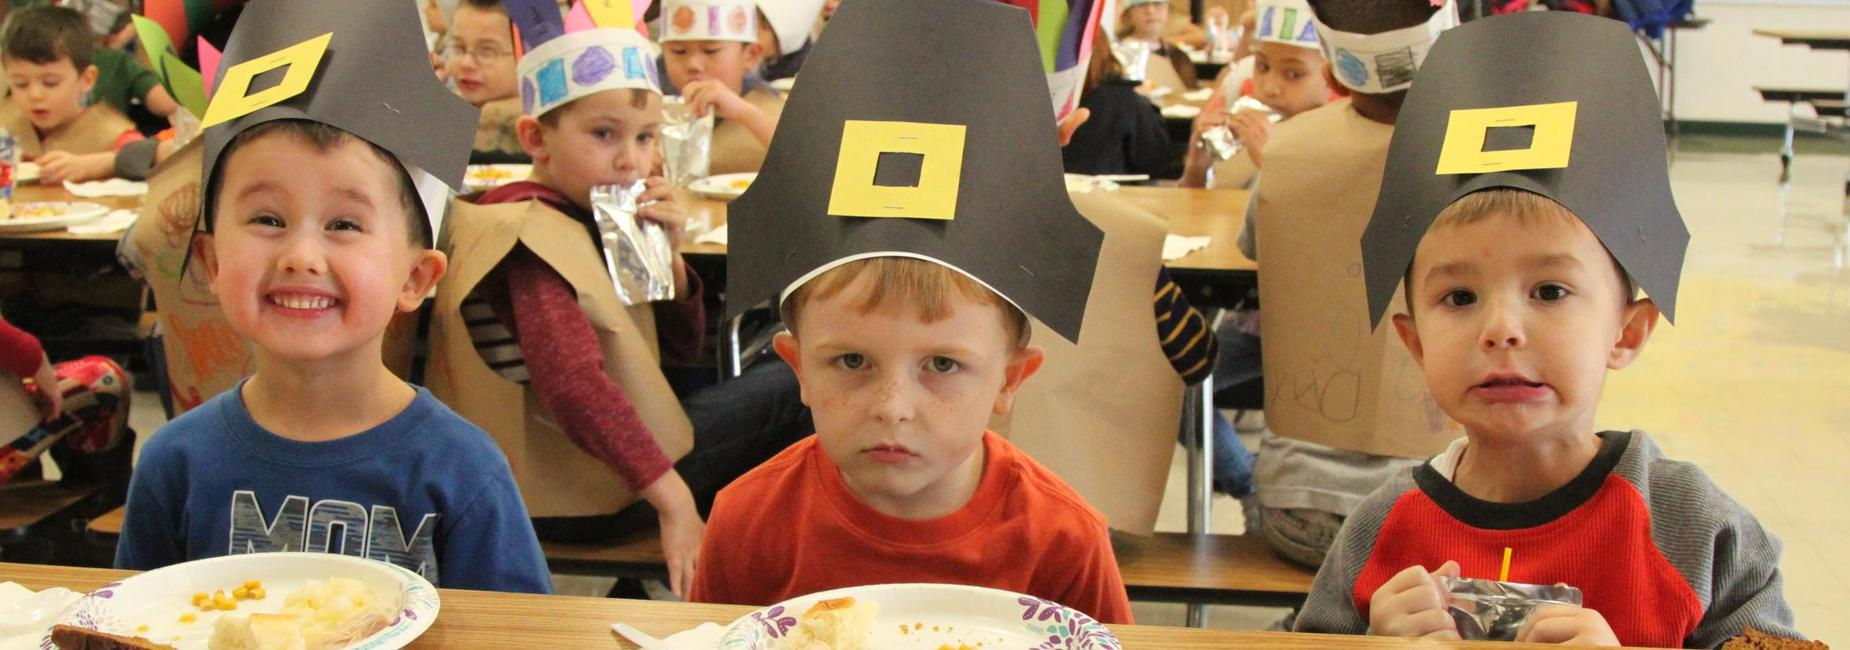 Students wearing Pilgrim hats they have made have Thanksgiving feast.